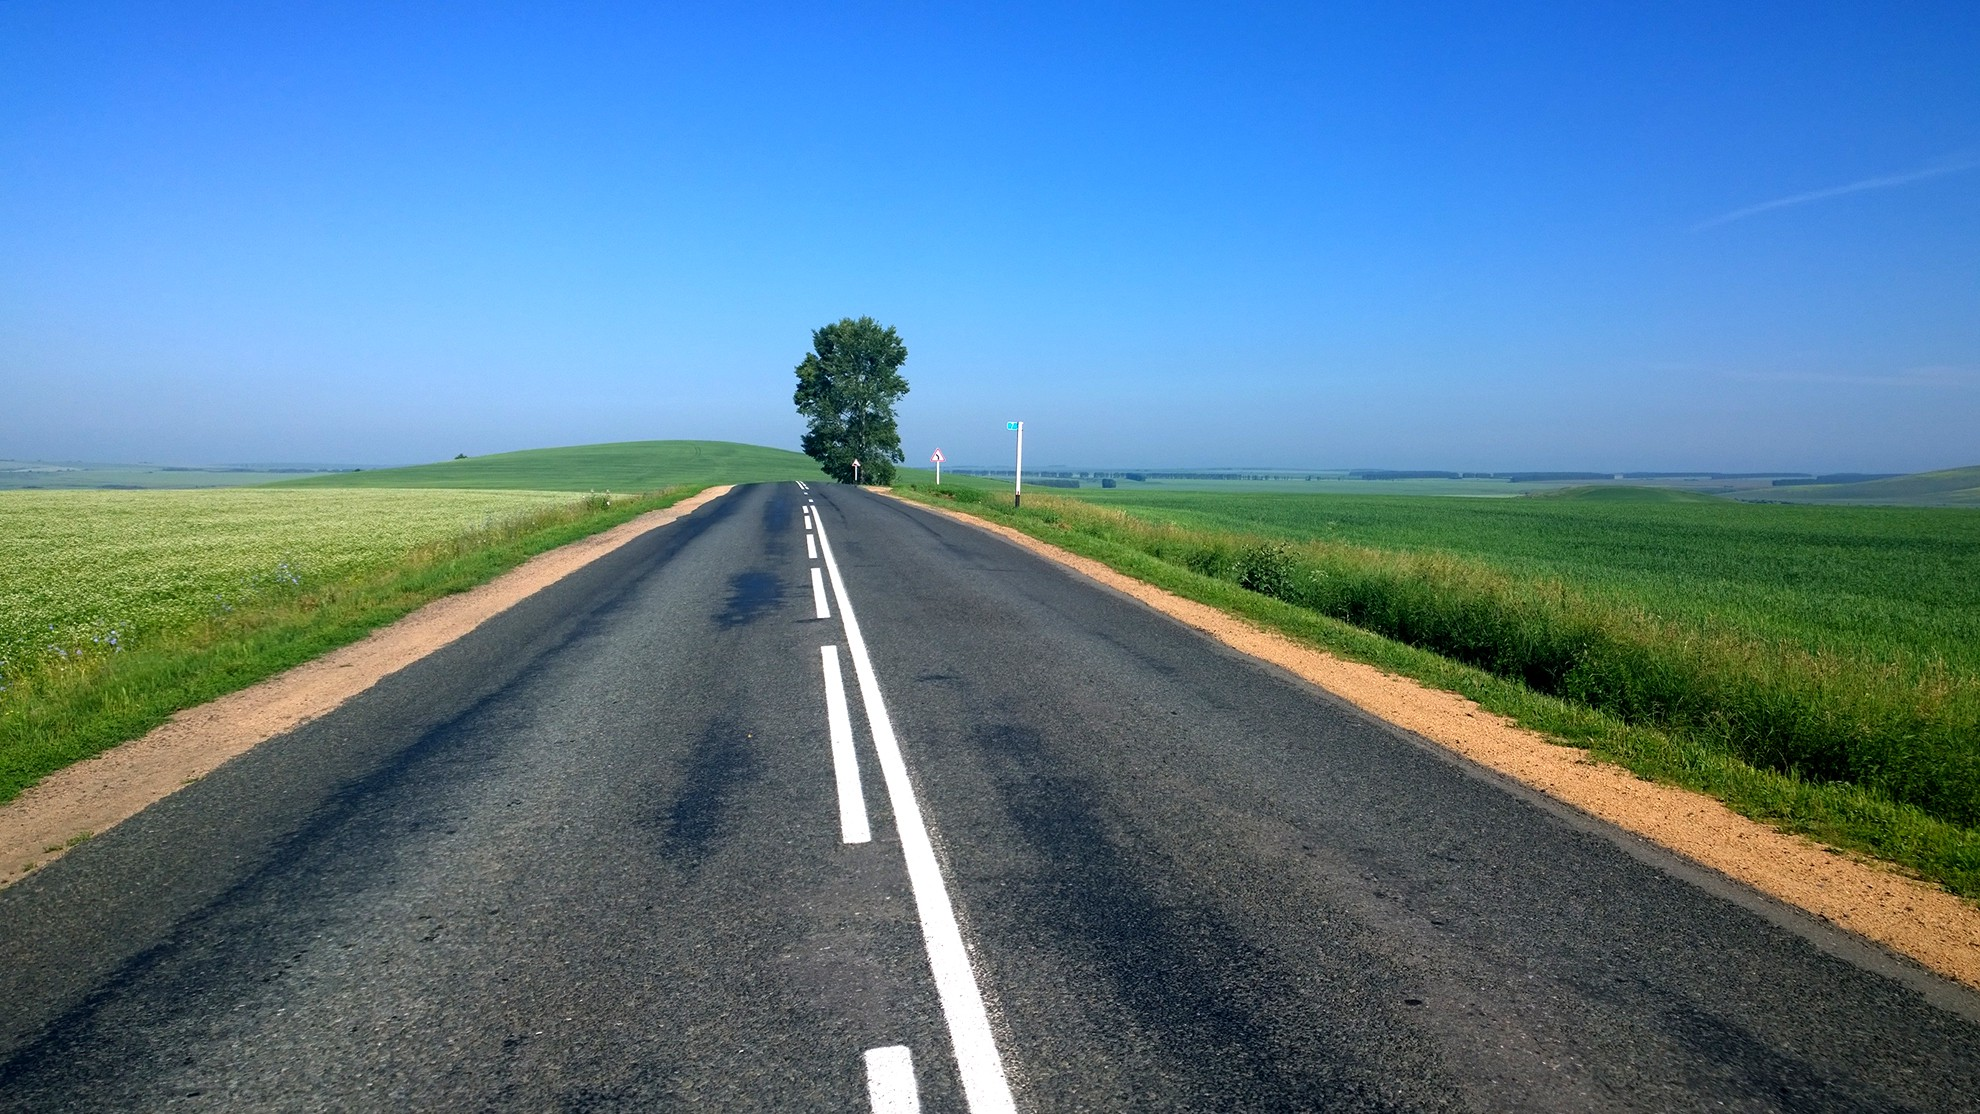 A stretch of a long, empty road against a blue sky.